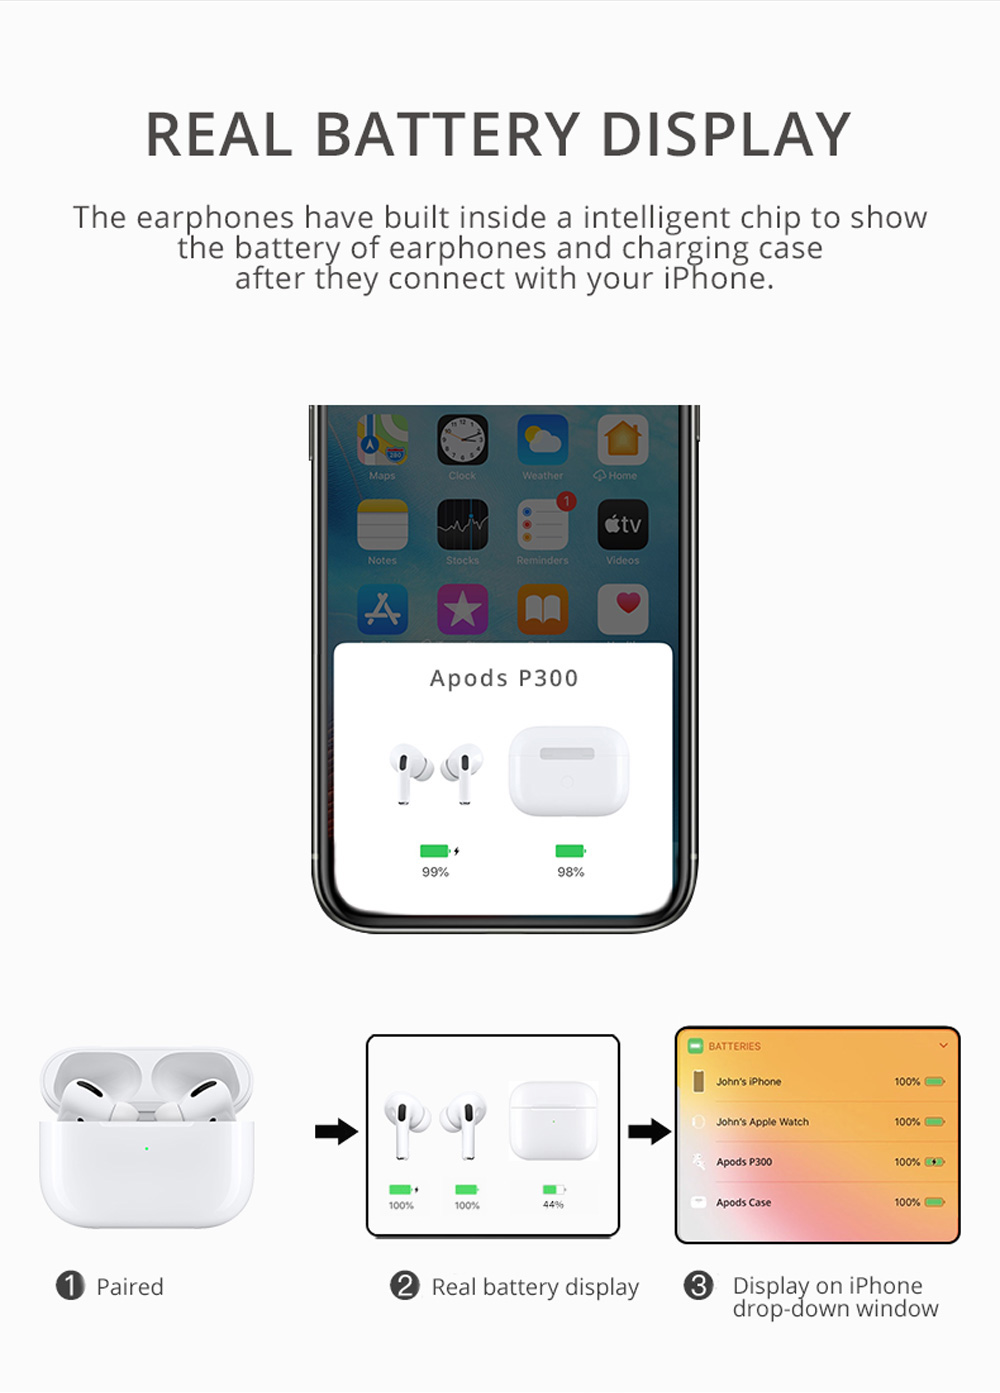 Apods P300 Bluetooth 5.0 TWS Earphones Independent Usage Wireless Charging Real Battery Display - White